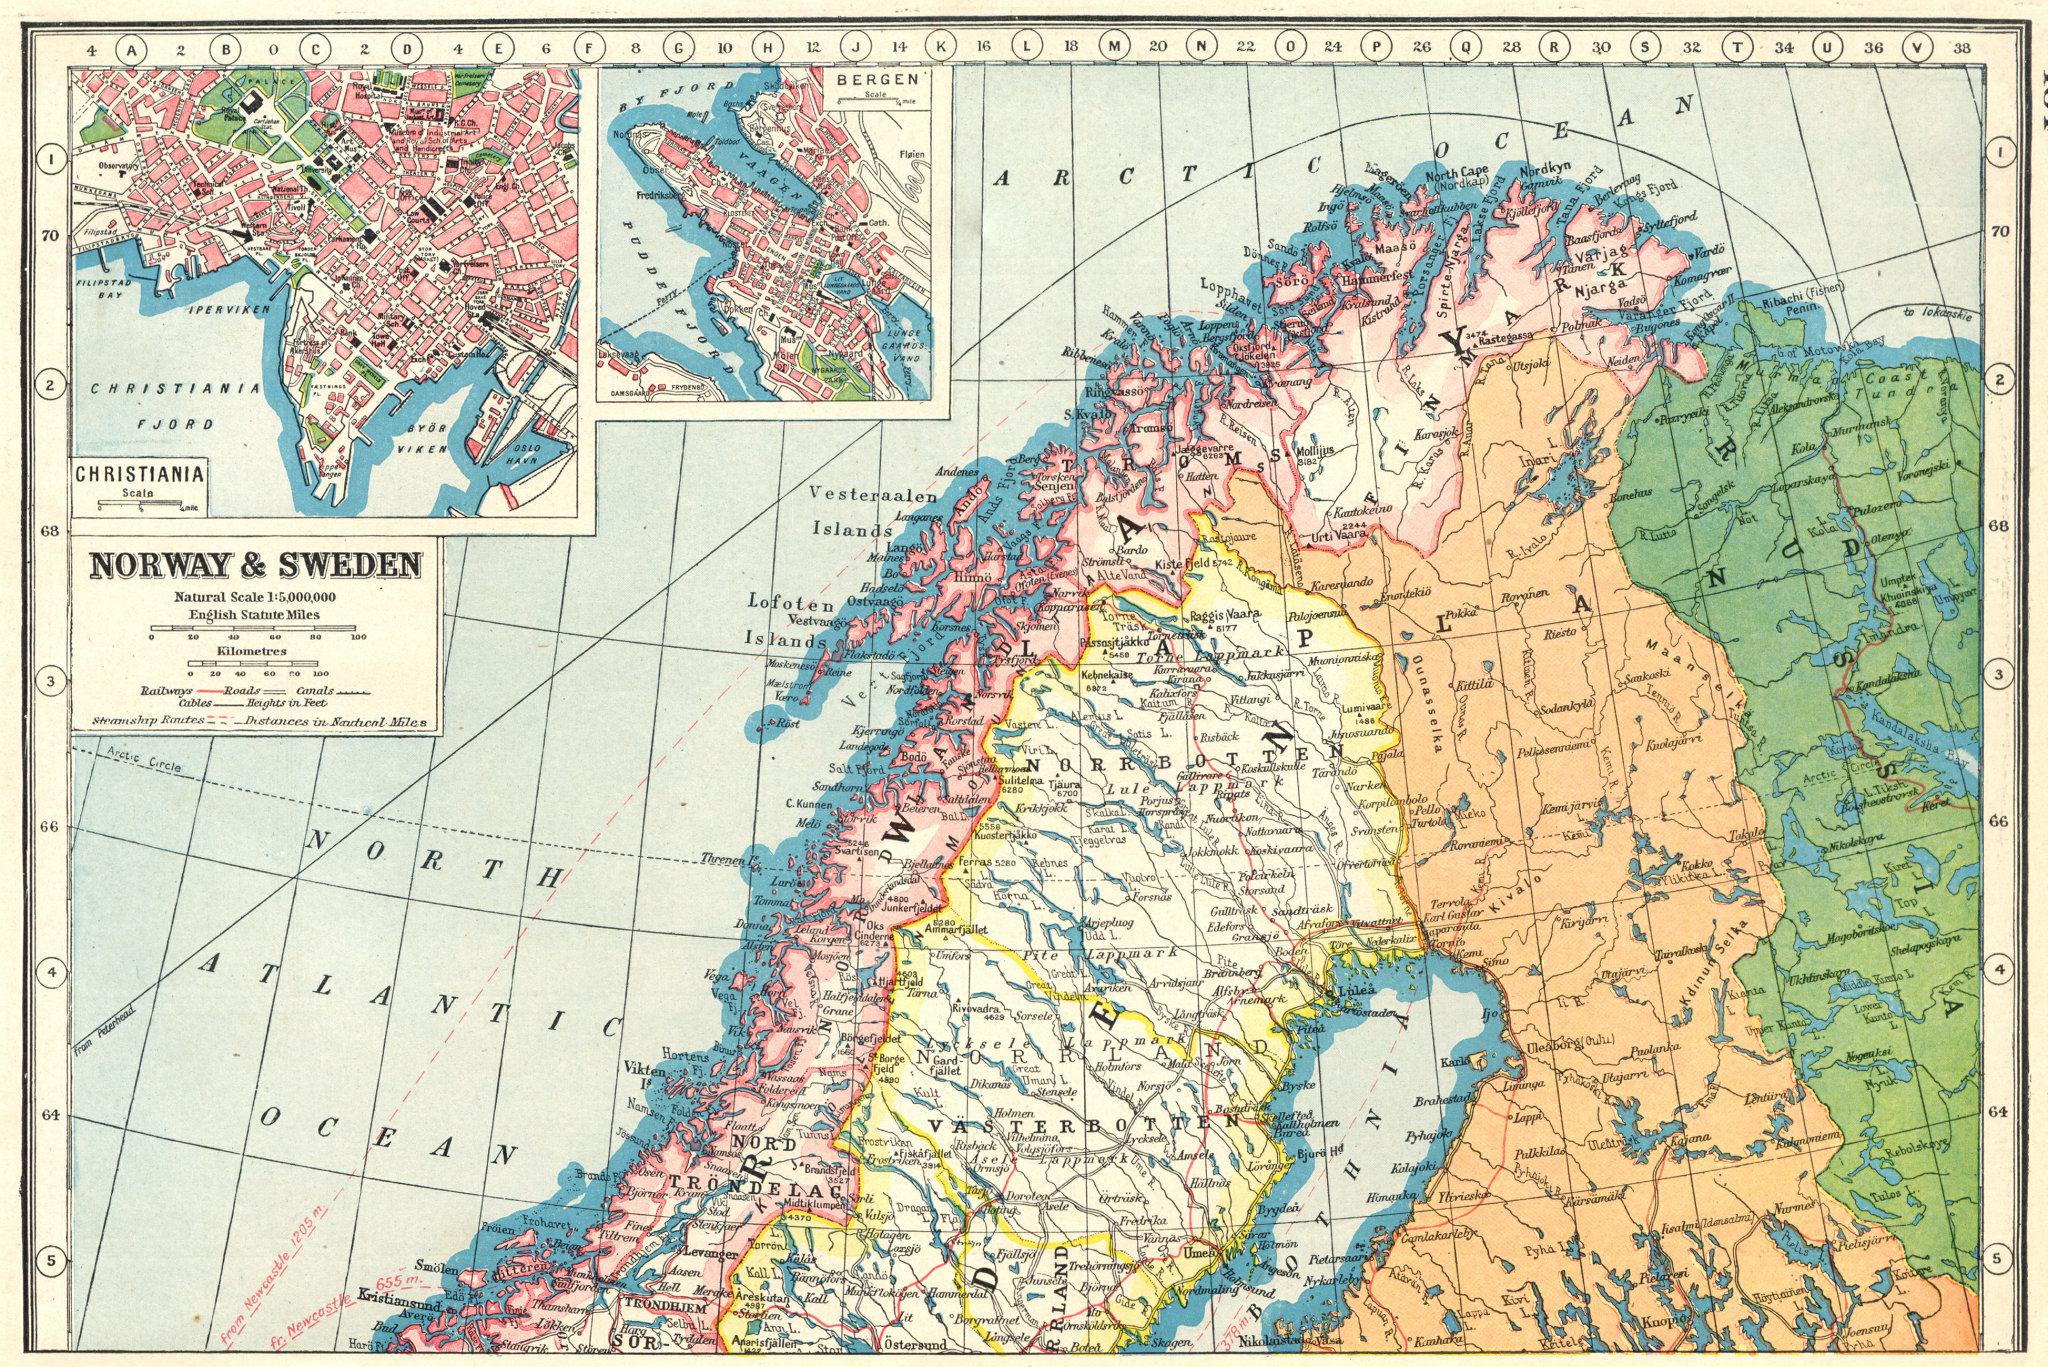 Associate Product SCANDINAVIA NORTH. Norway & Sweden;inset Oslo Christiania;Bergen 1920 old map